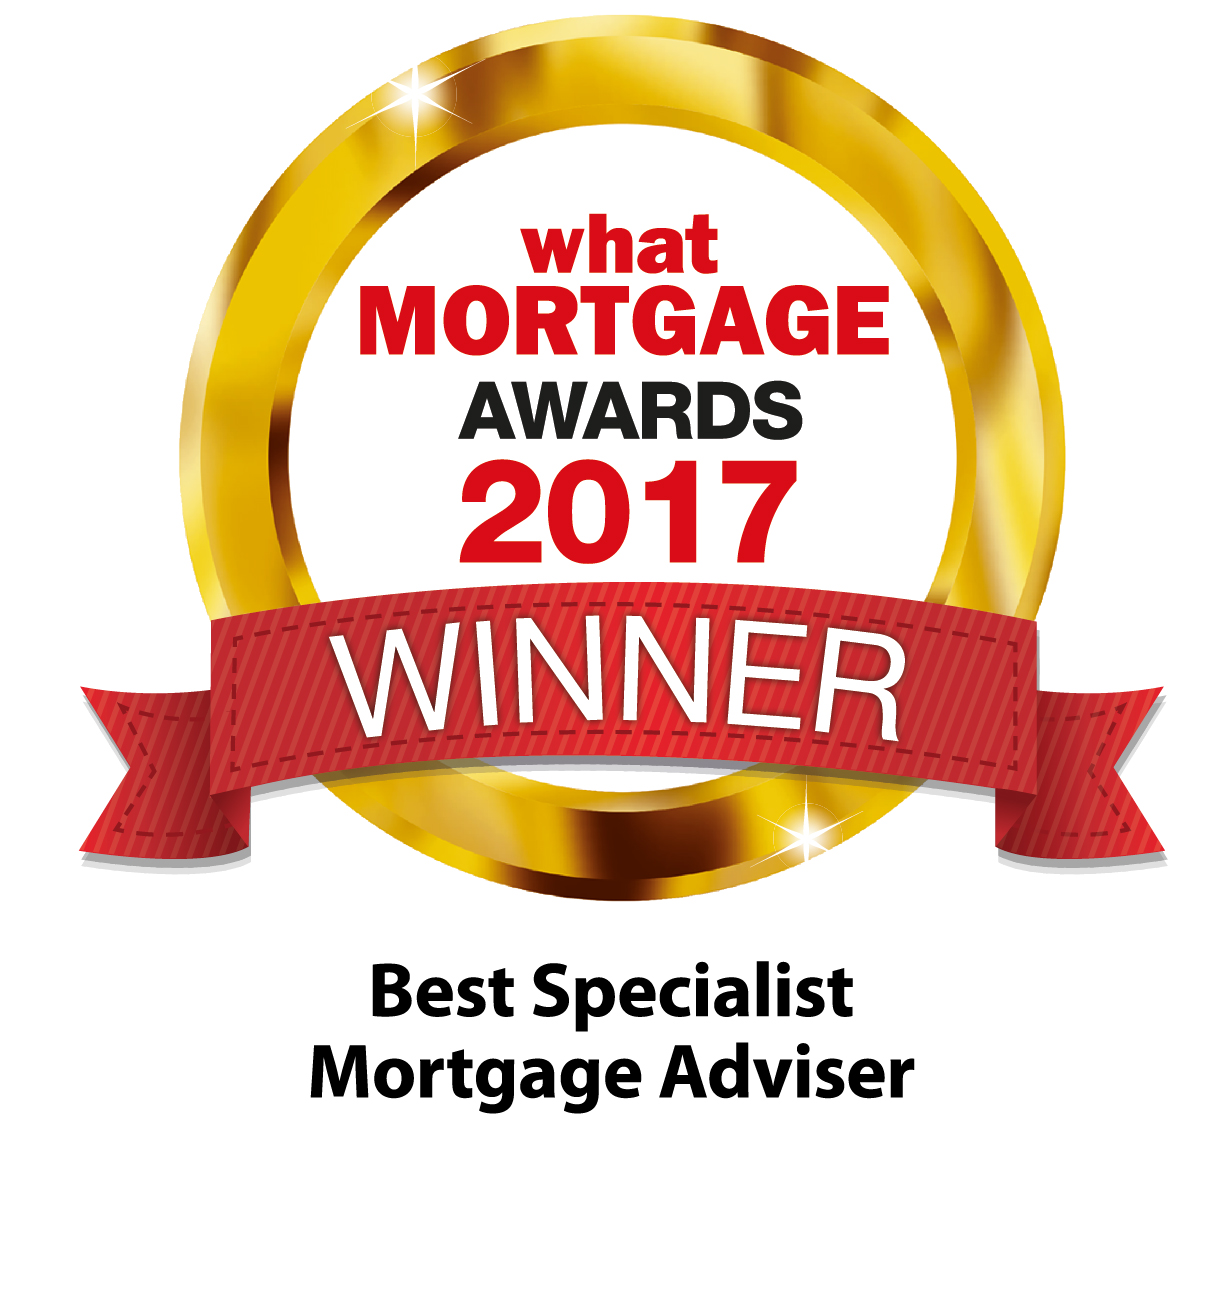 What Mortgage - Best Specialist Adviser 2017